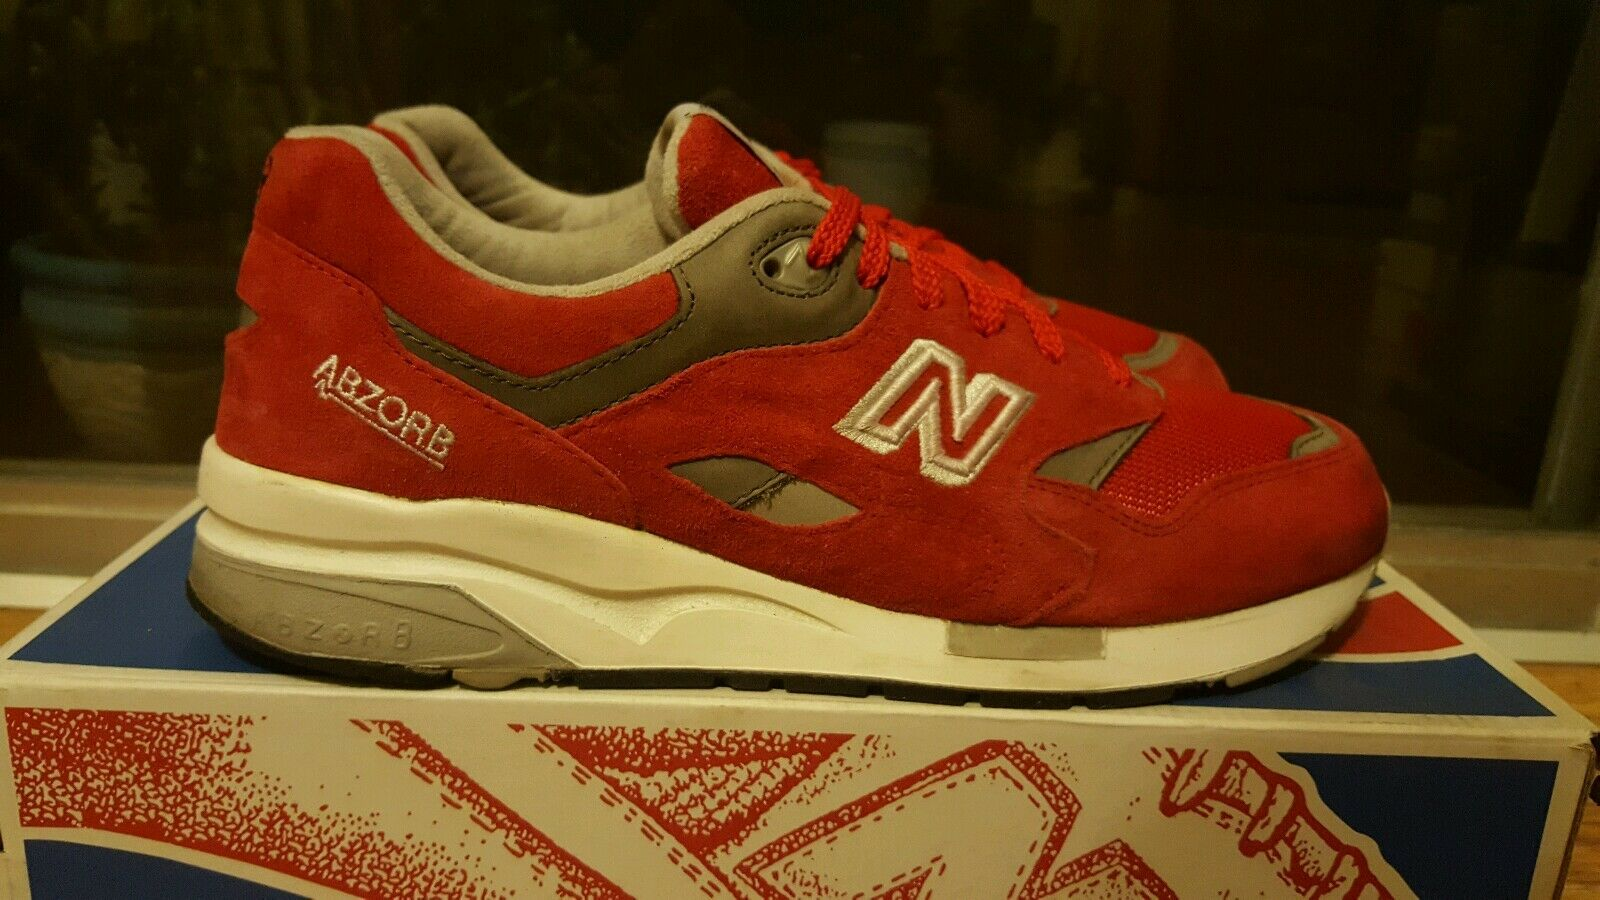 New Balance M1600 Suede Fire Red Sz 9.5